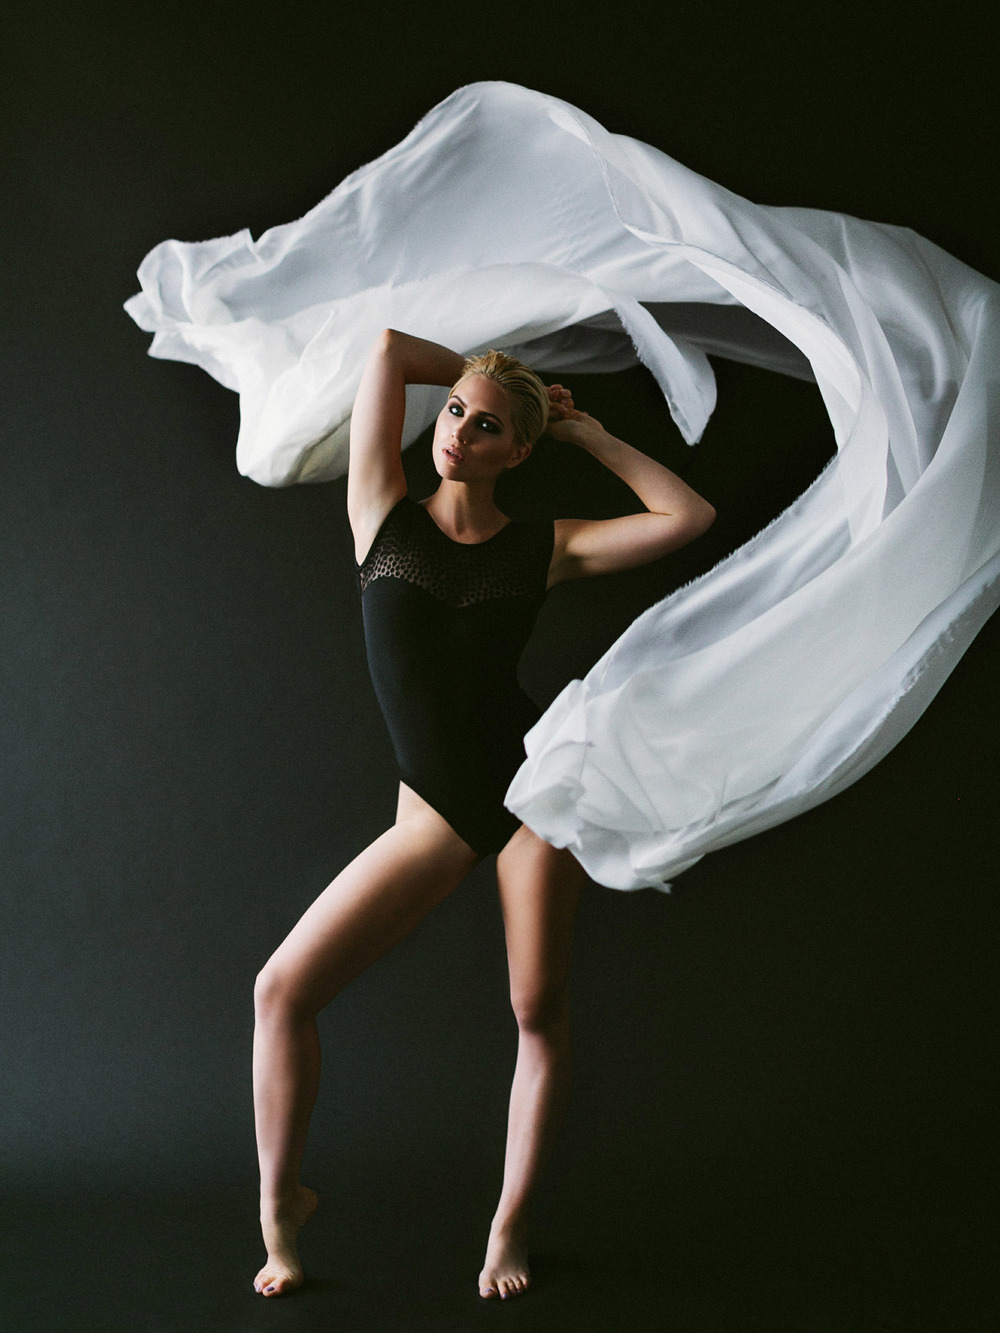 Motion with fabric | Katch Silva